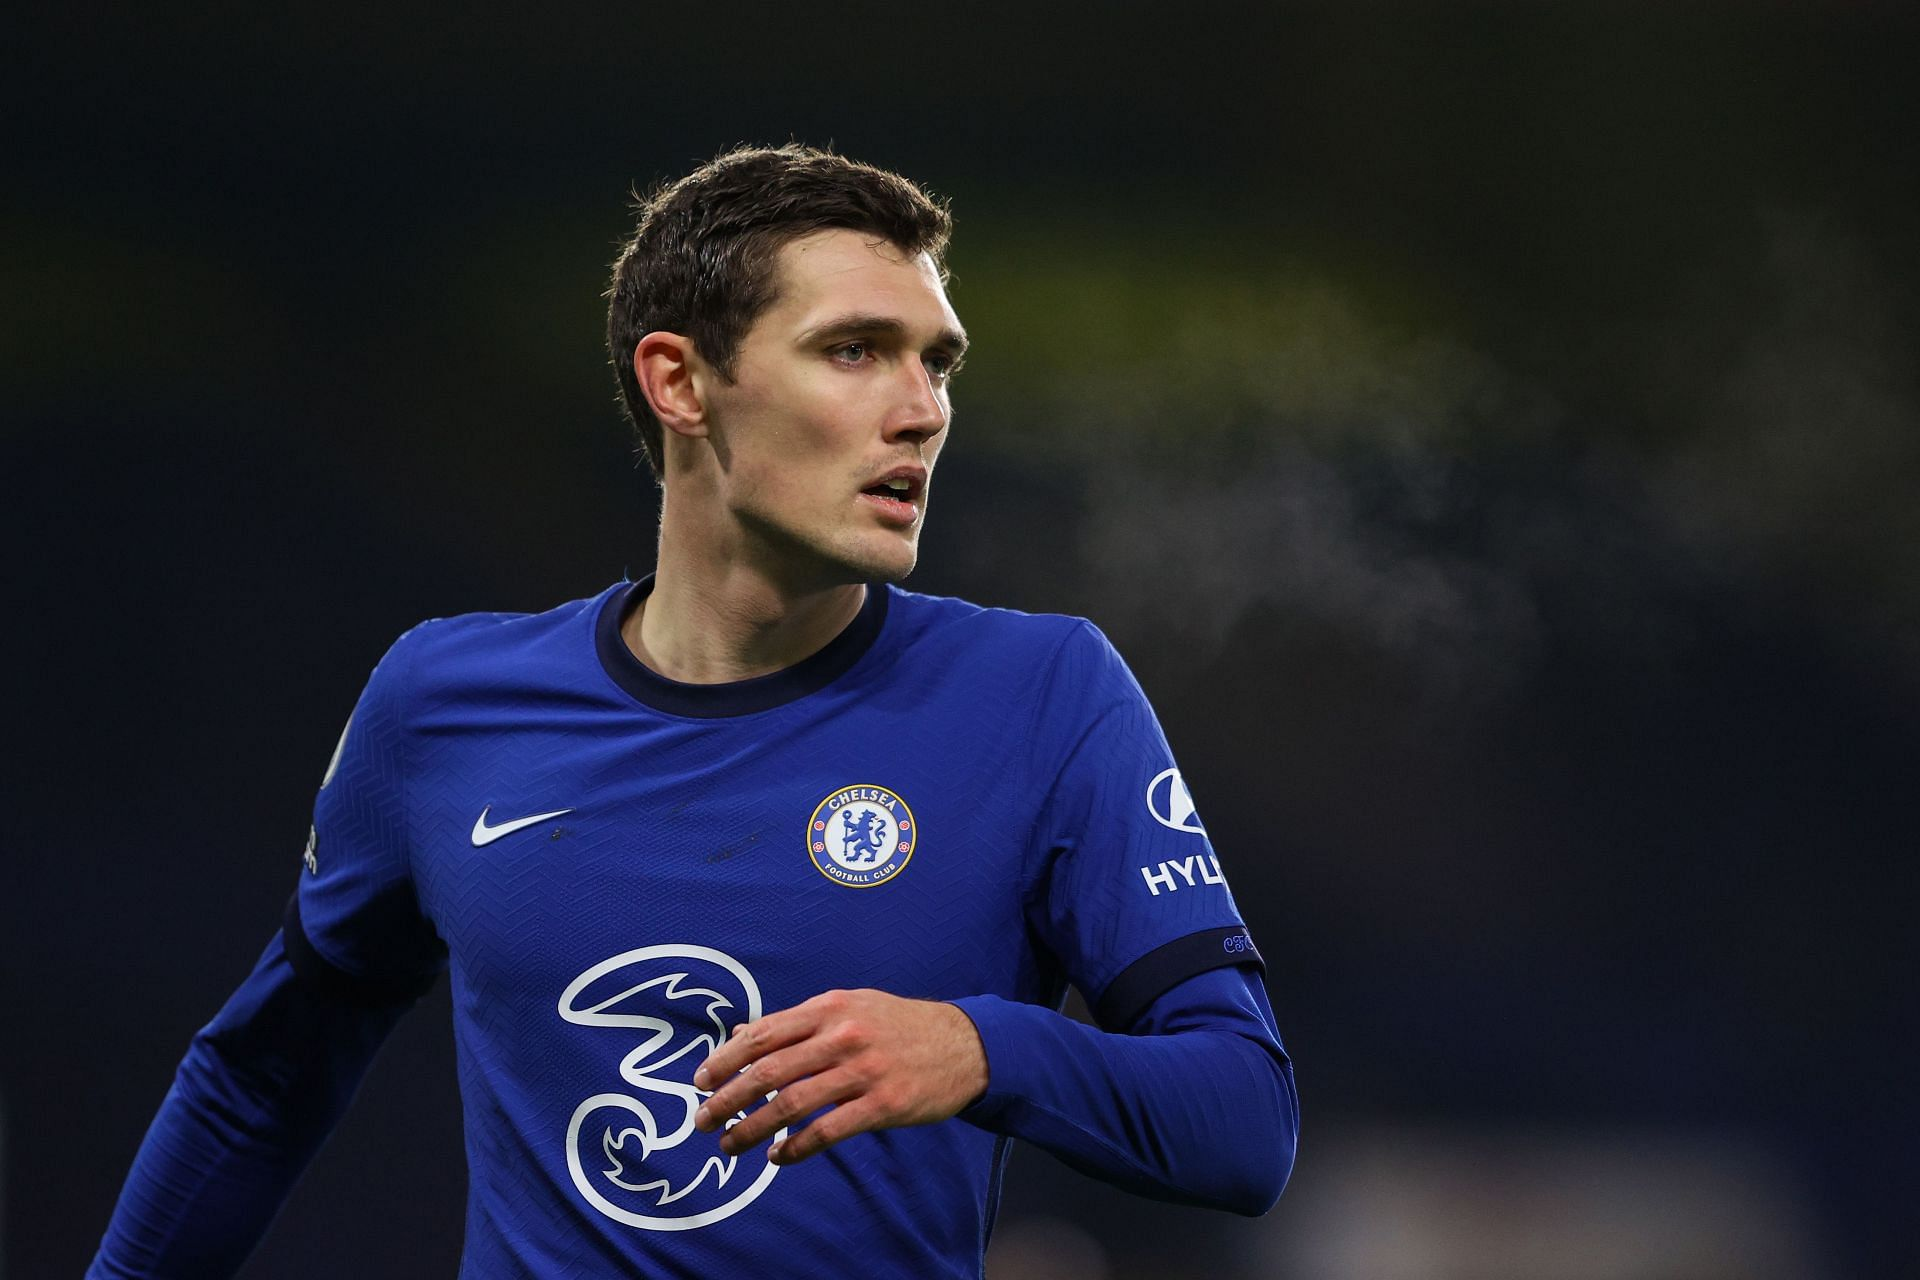 The defender has been a vital figure for Chelsea this season